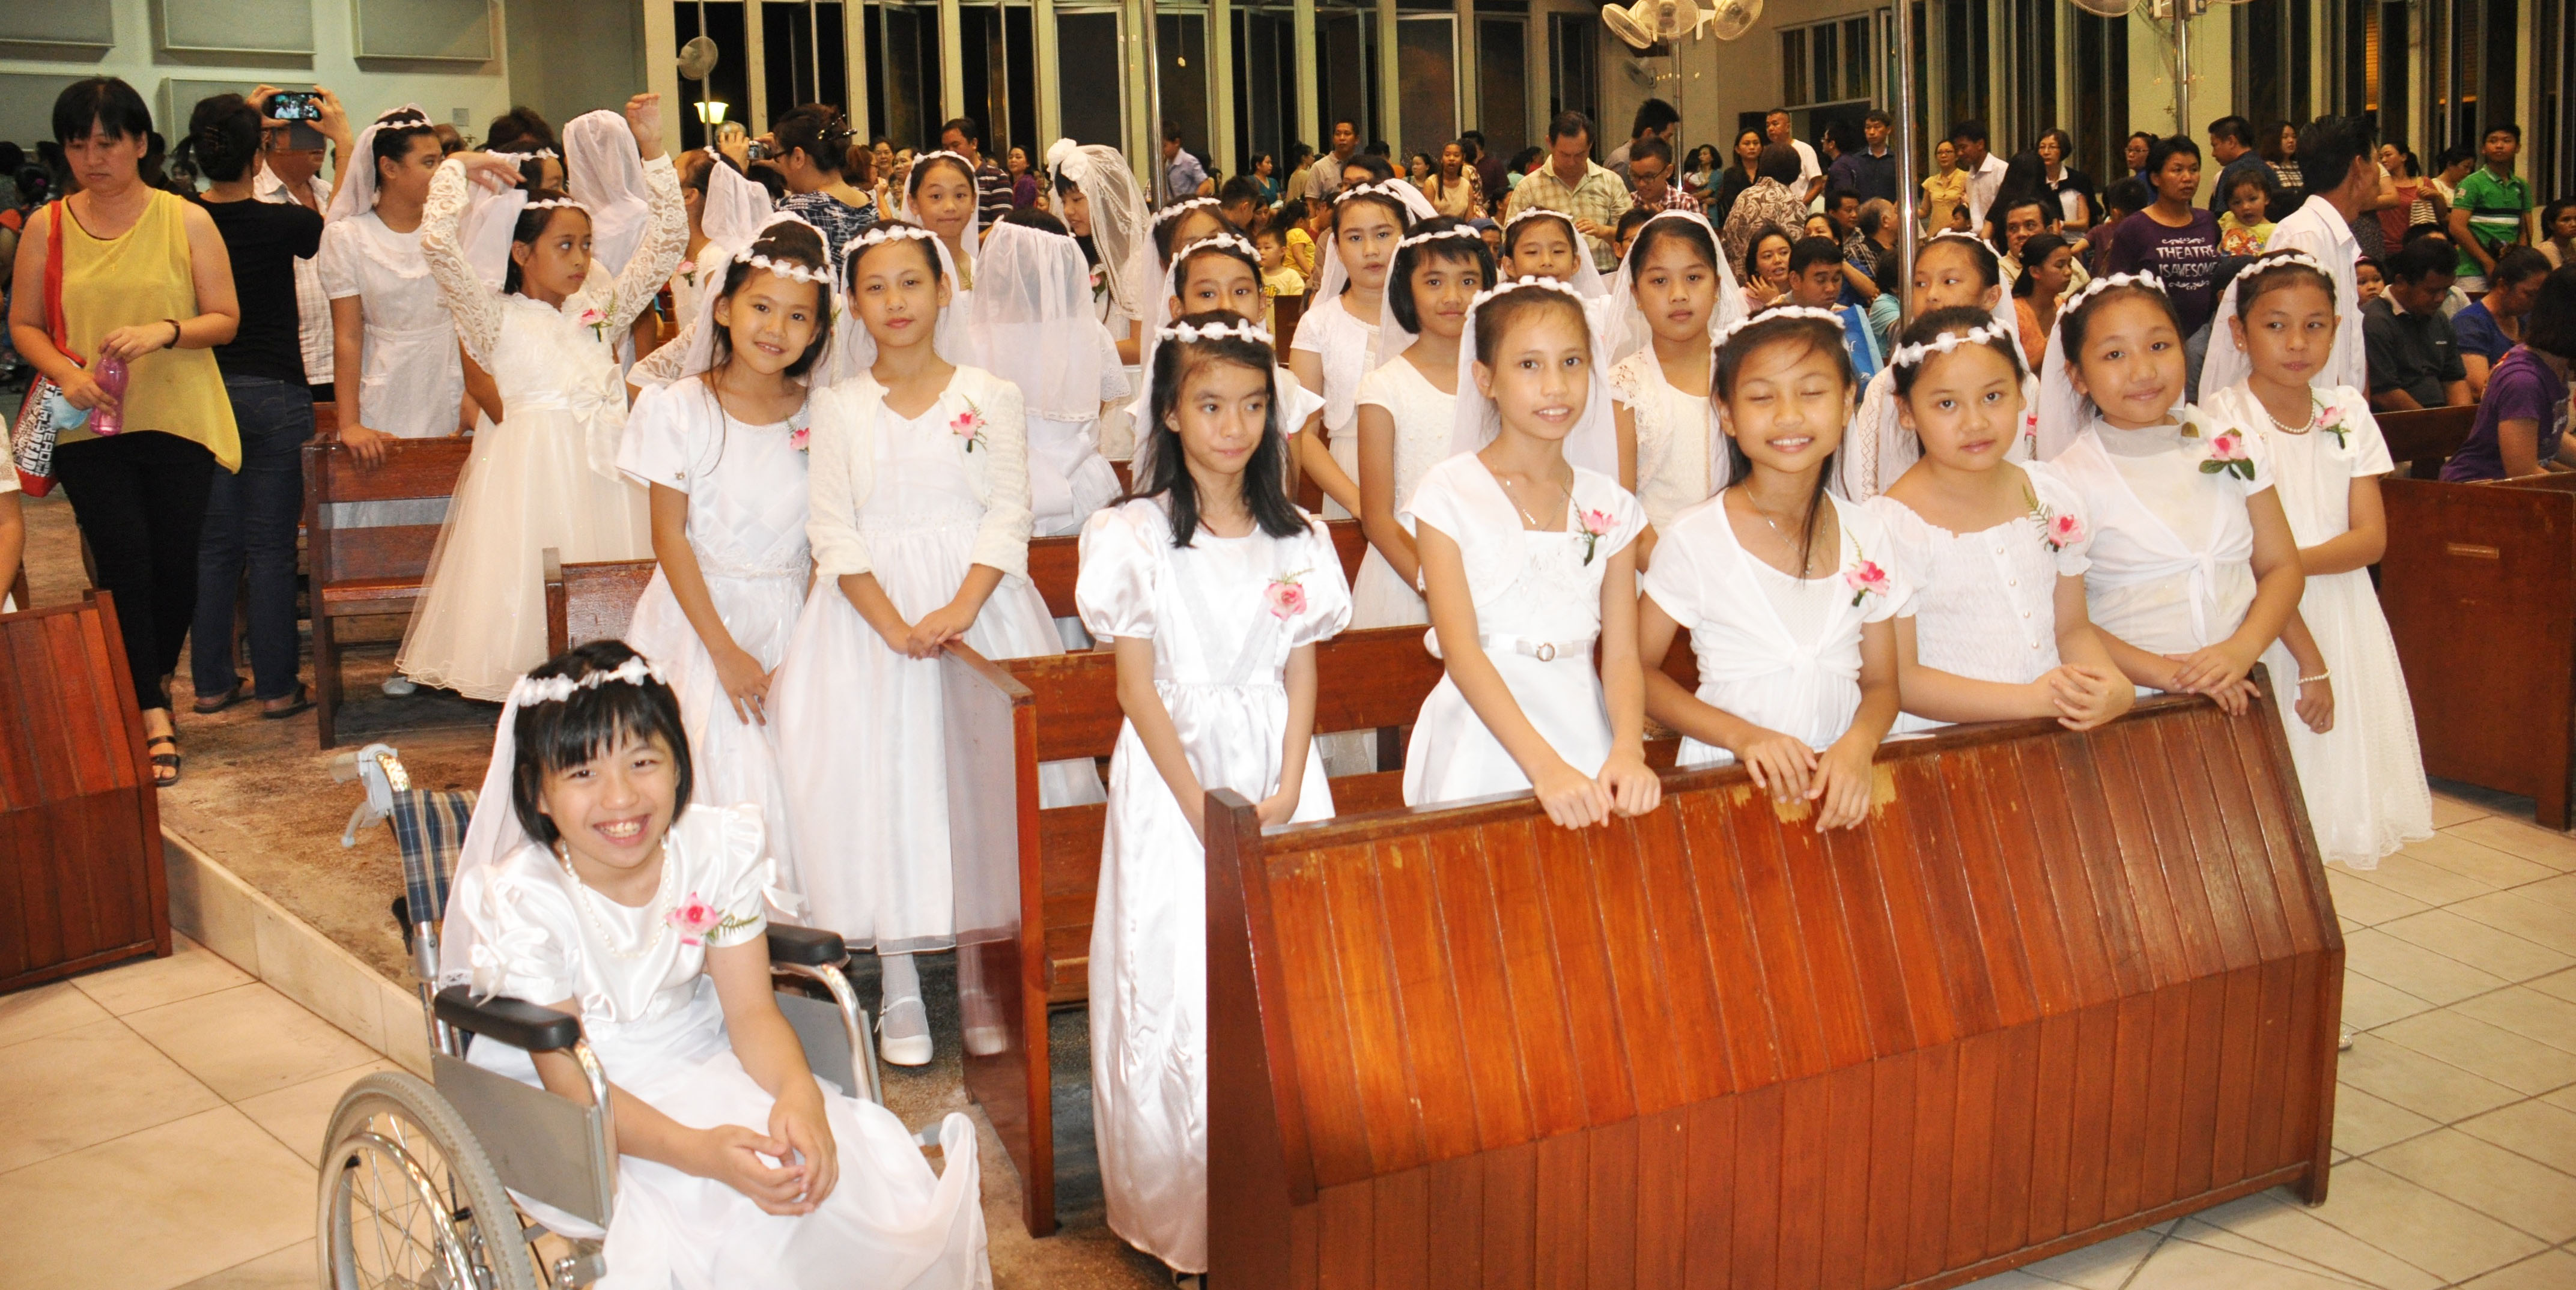 A section of the 108 first communicants.